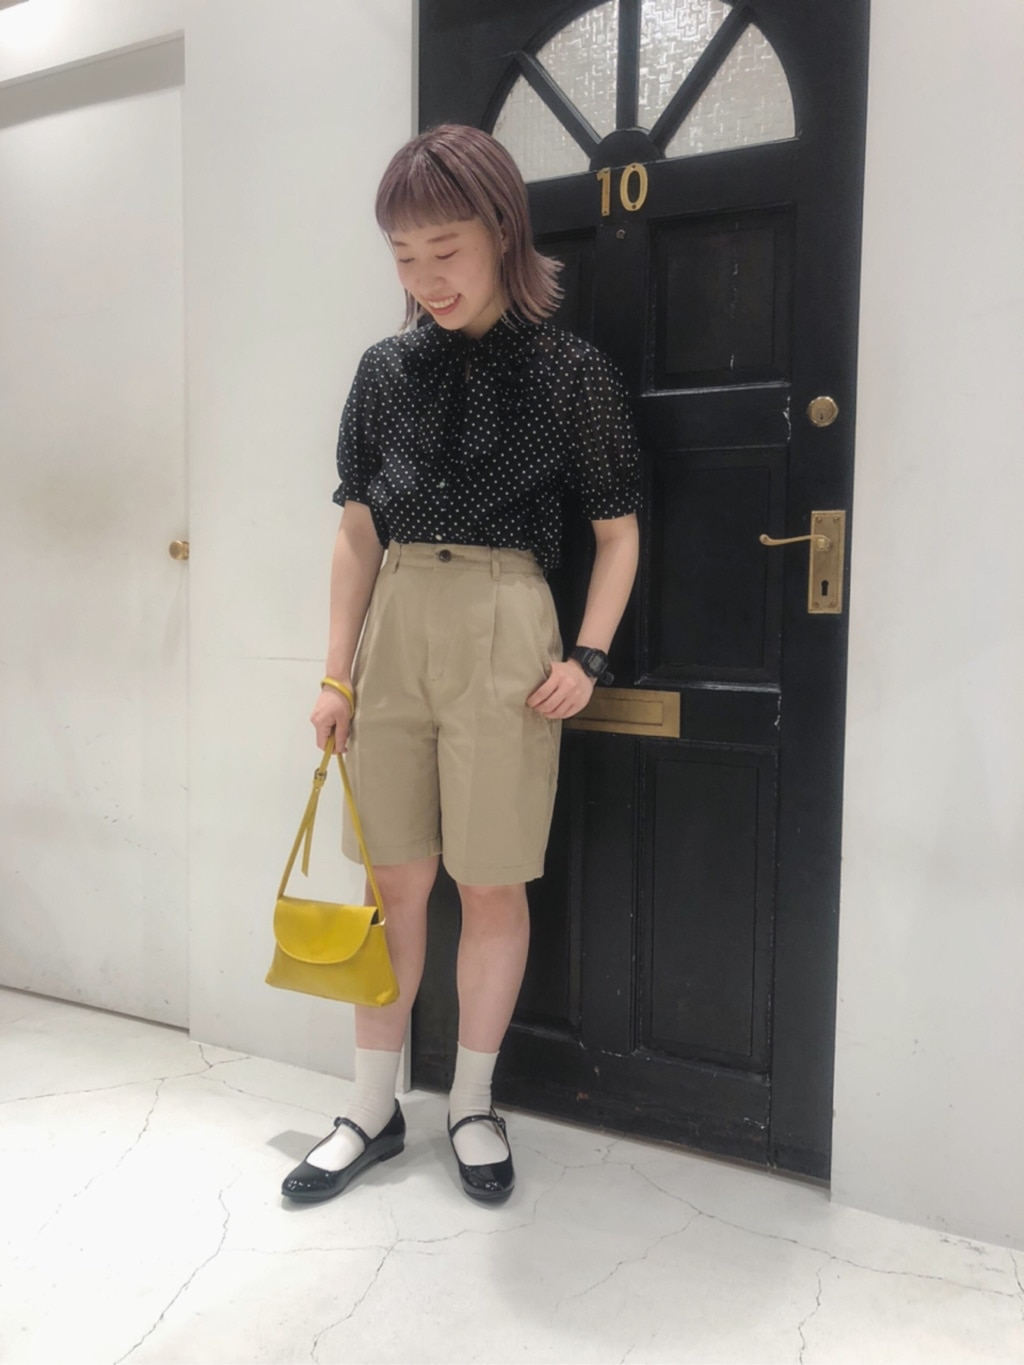 Dot and Stripes CHILD WOMAN ルクアイーレ 身長:157cm 2020.07.21